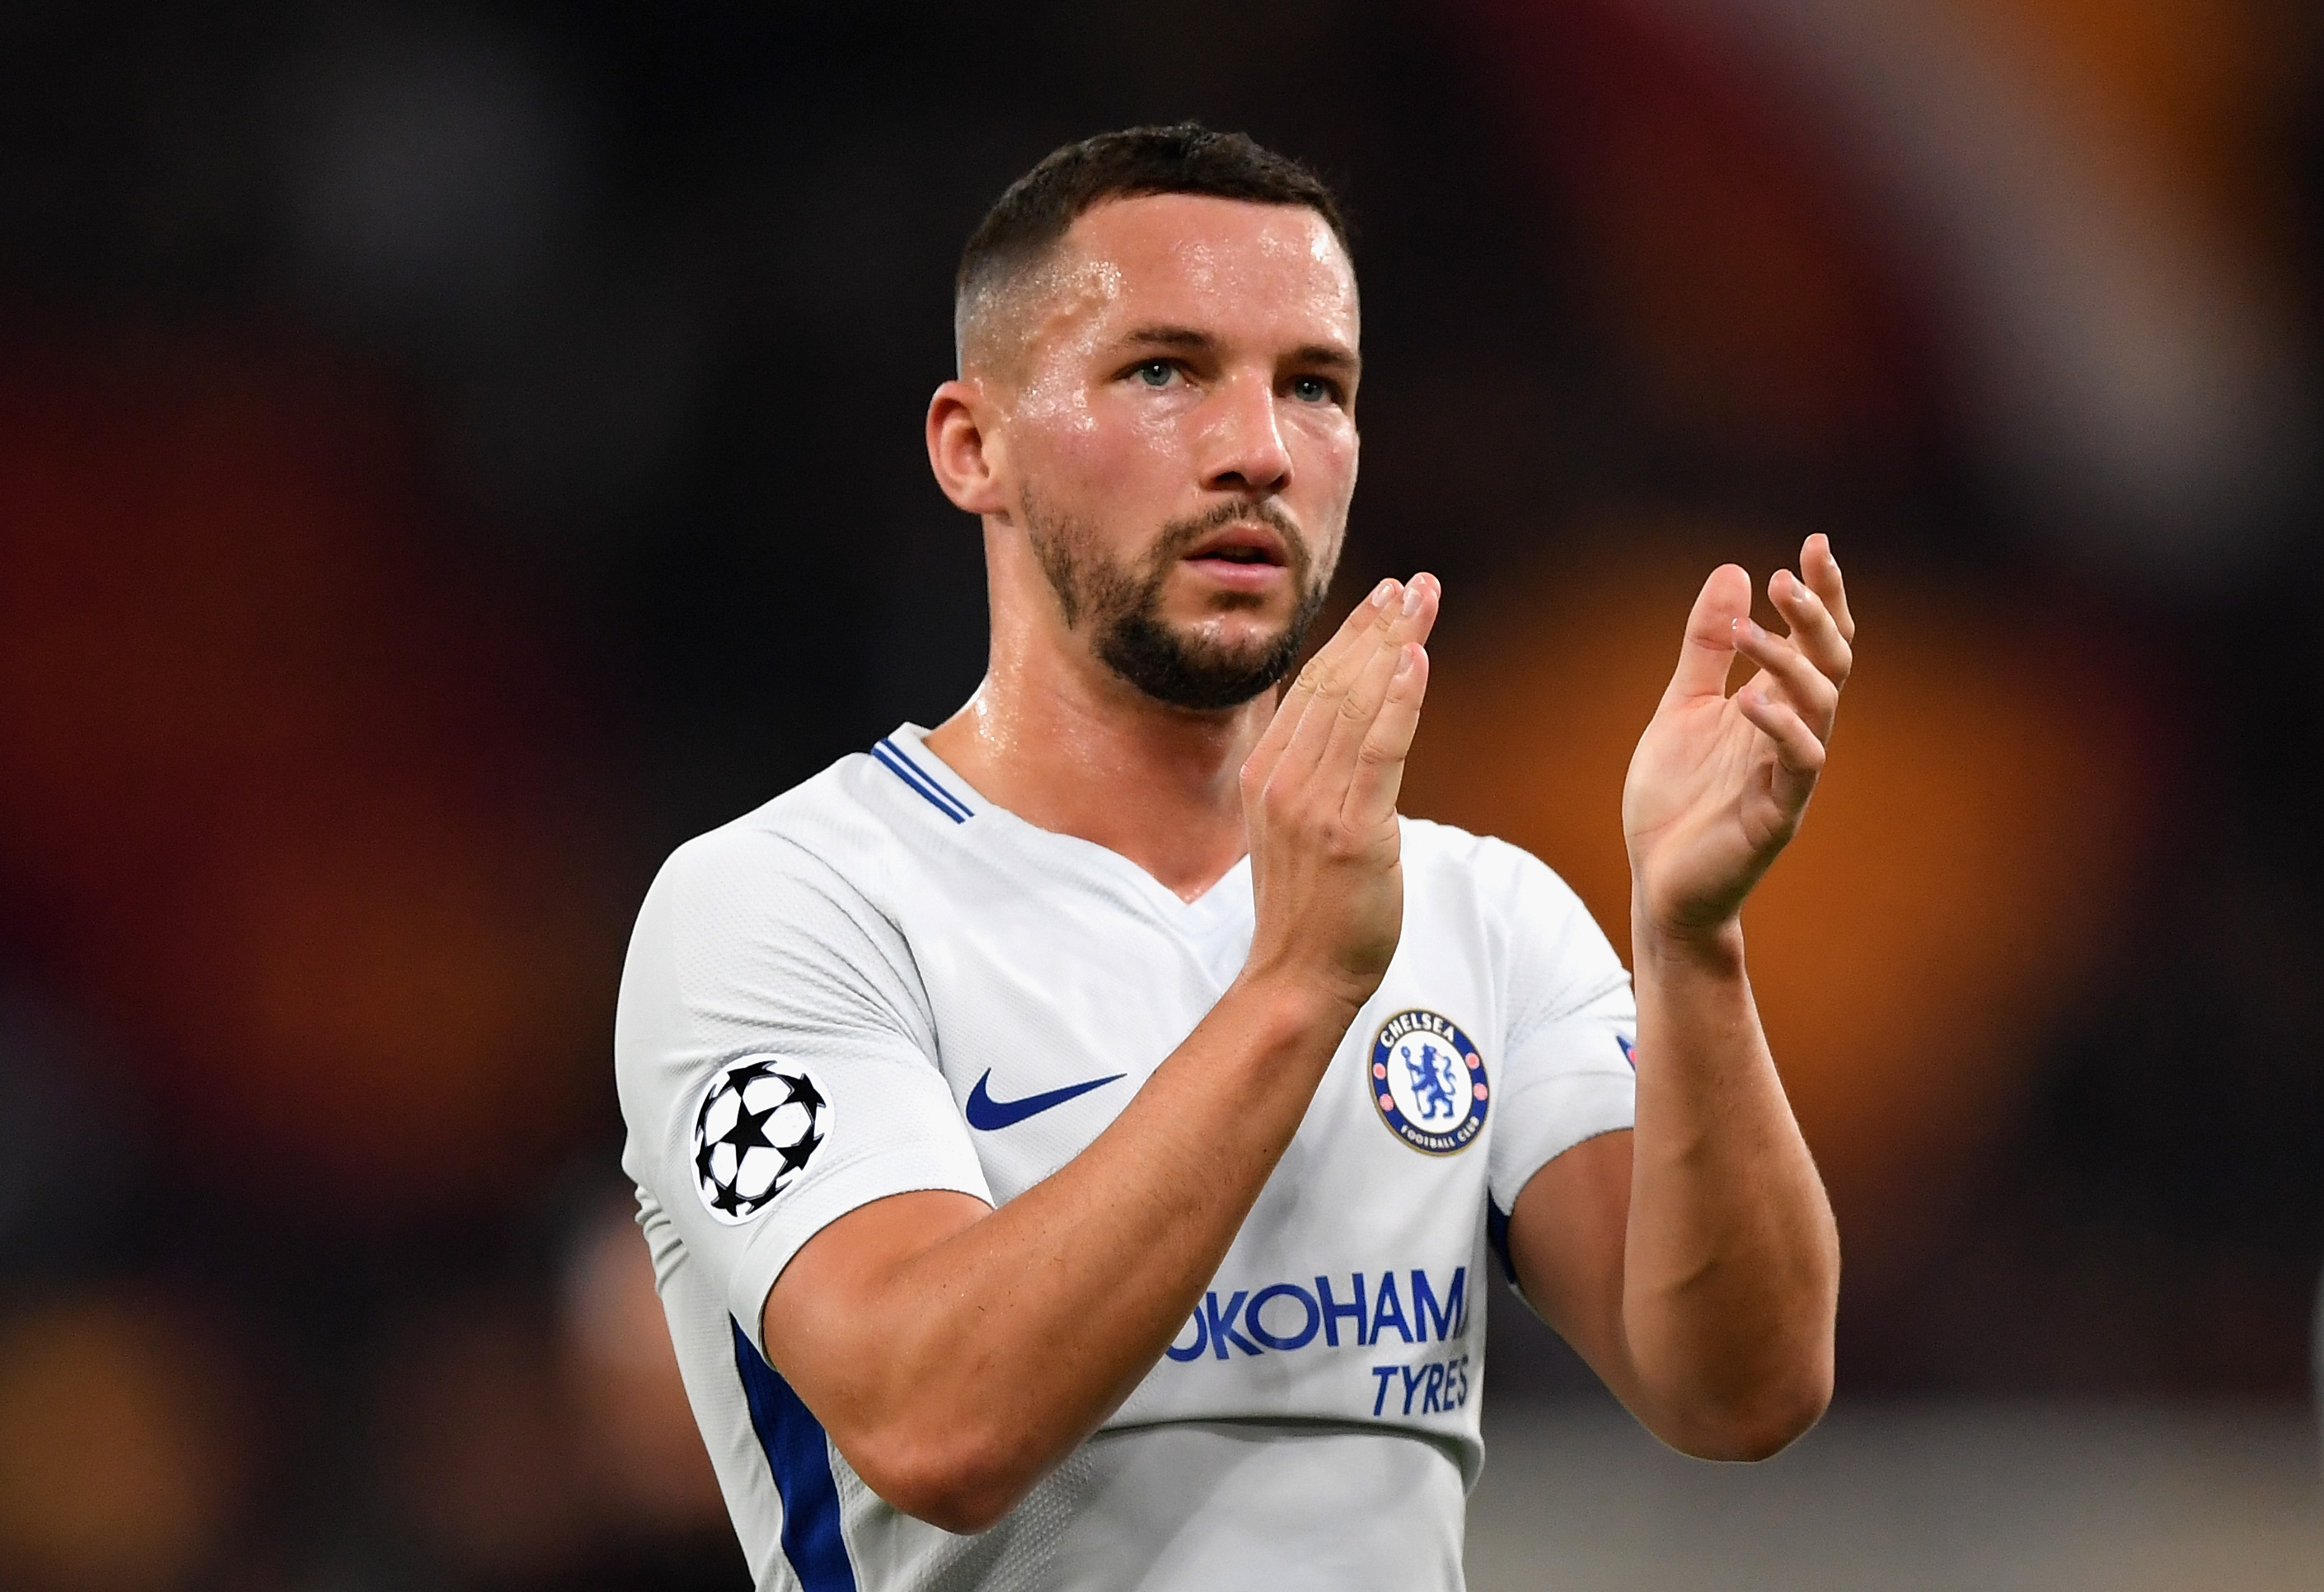 Chelsea star Danny Drinkwater has ruined his England career – Chris Sutton